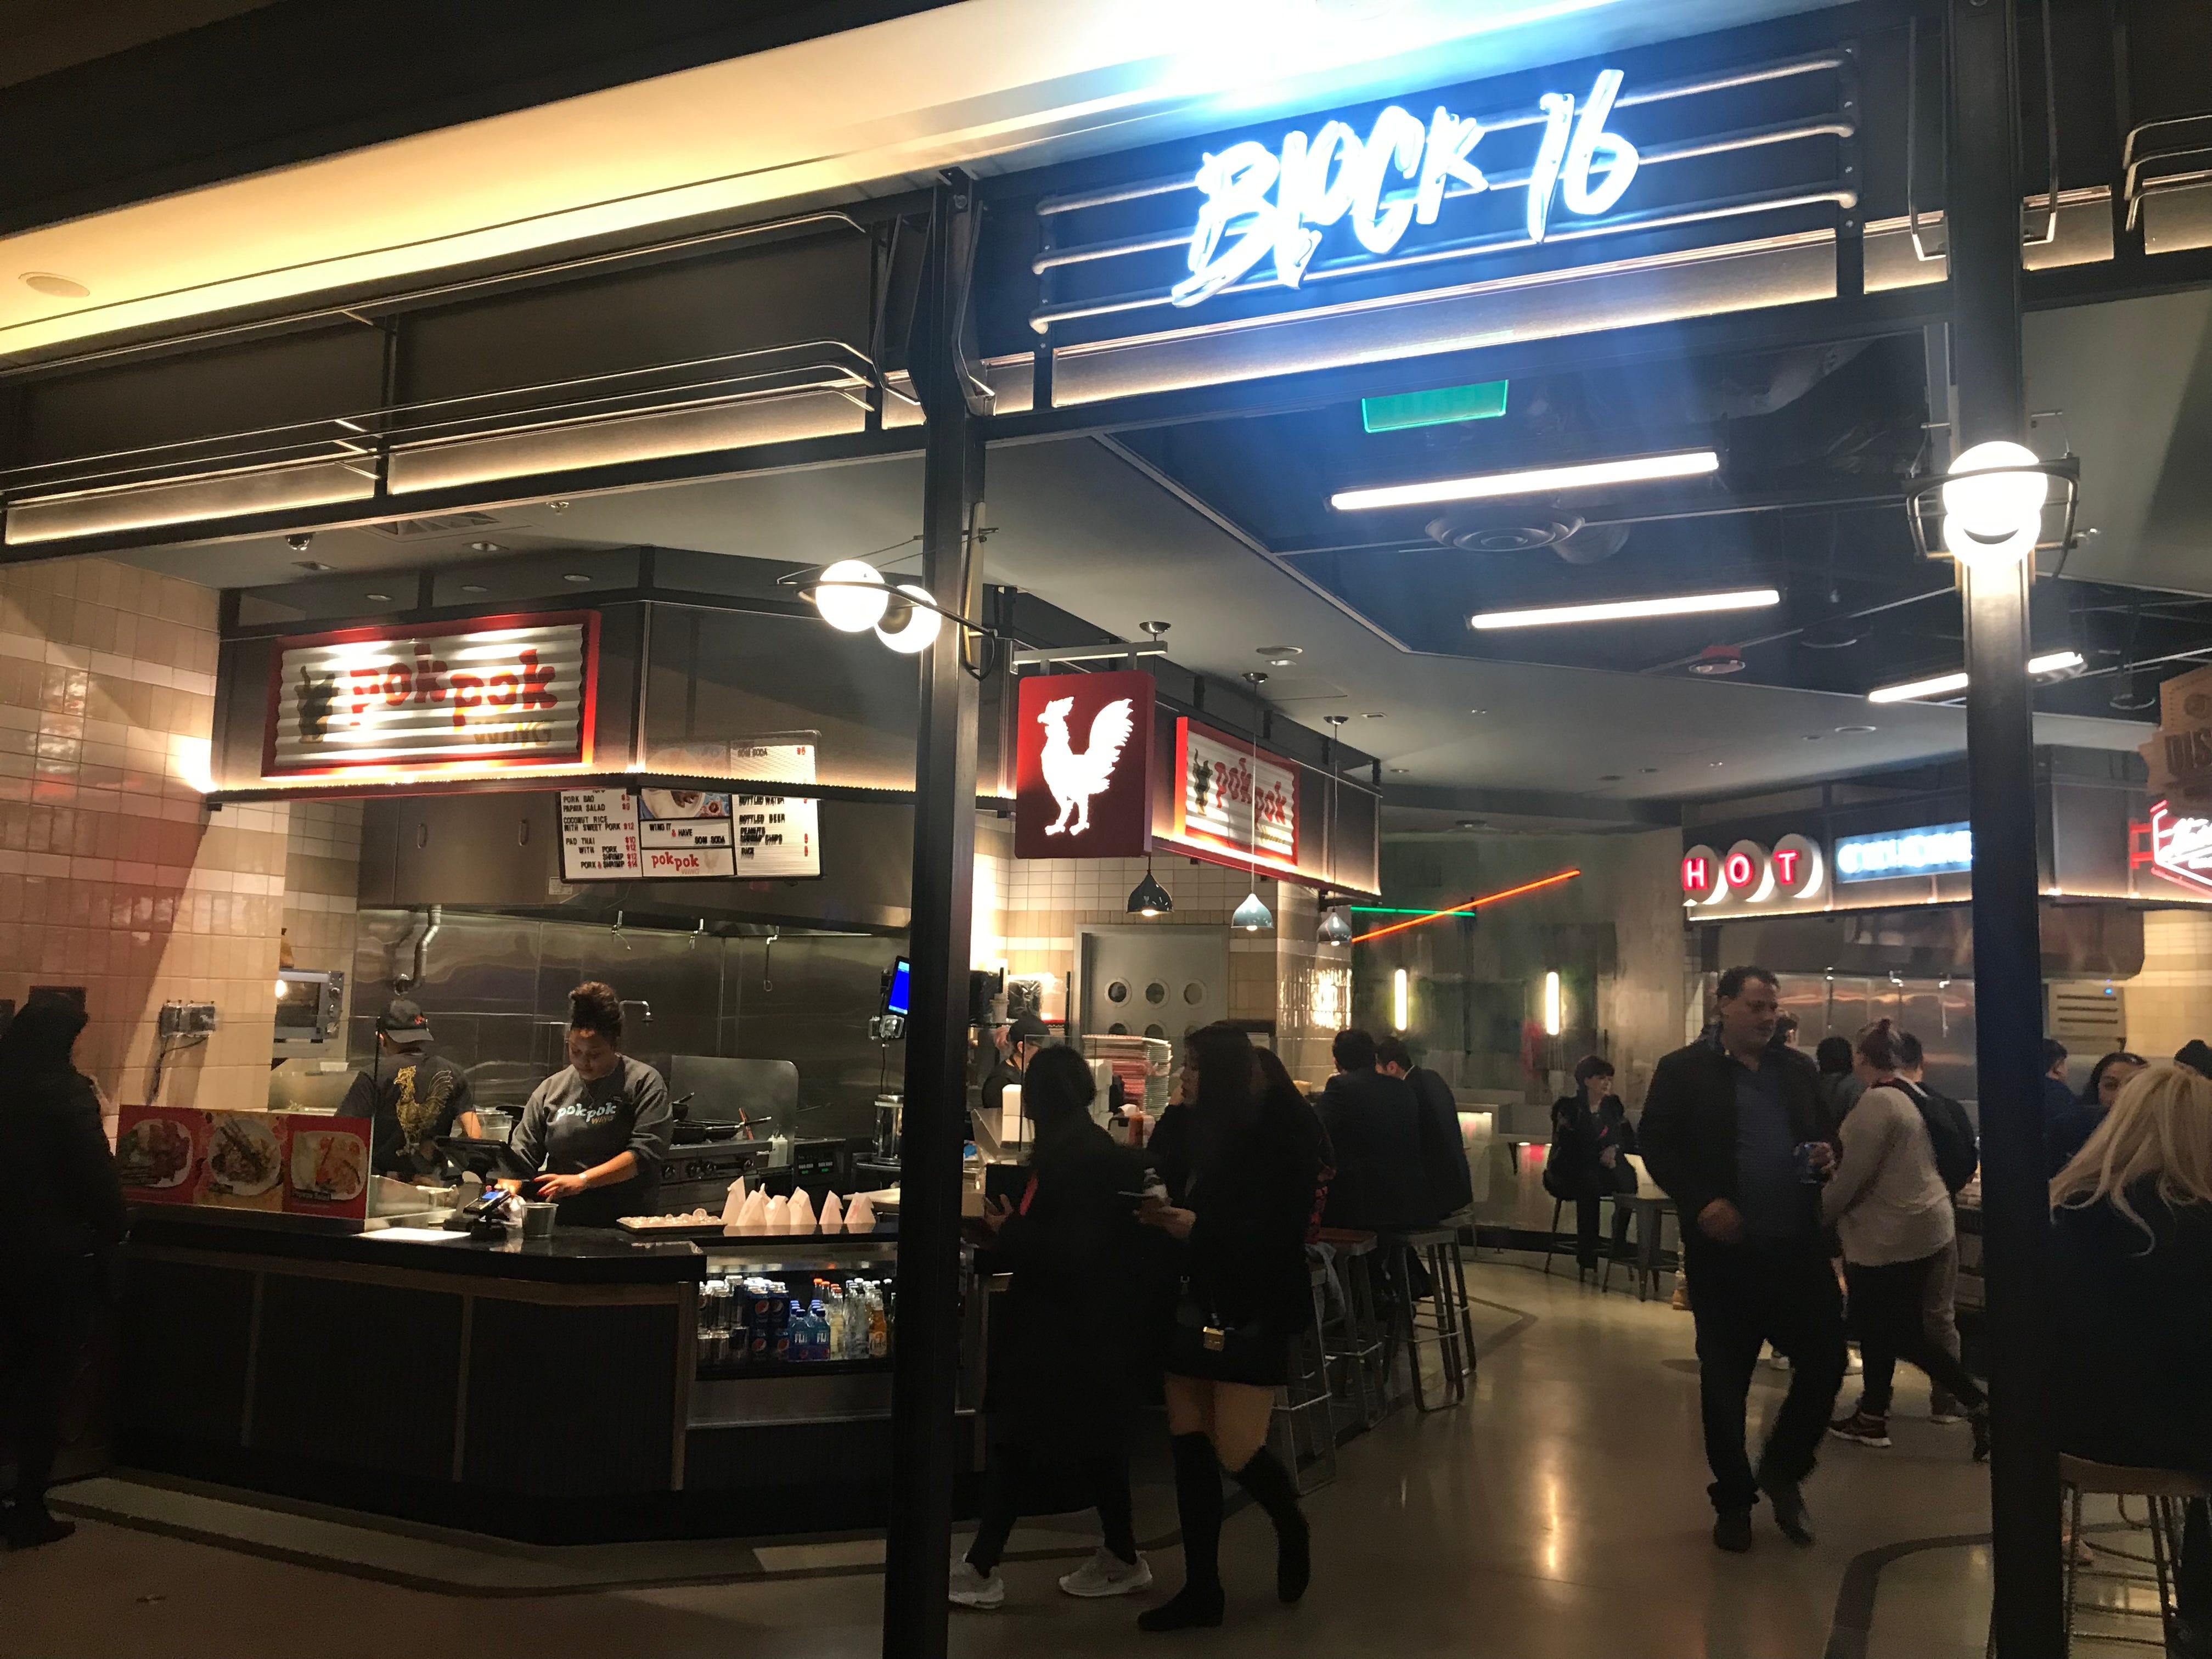 Block 16 Urban Food Hall is a new food court for foodies at Cosmopolitan Las Vegas, featuring popular restaurants from around the country.